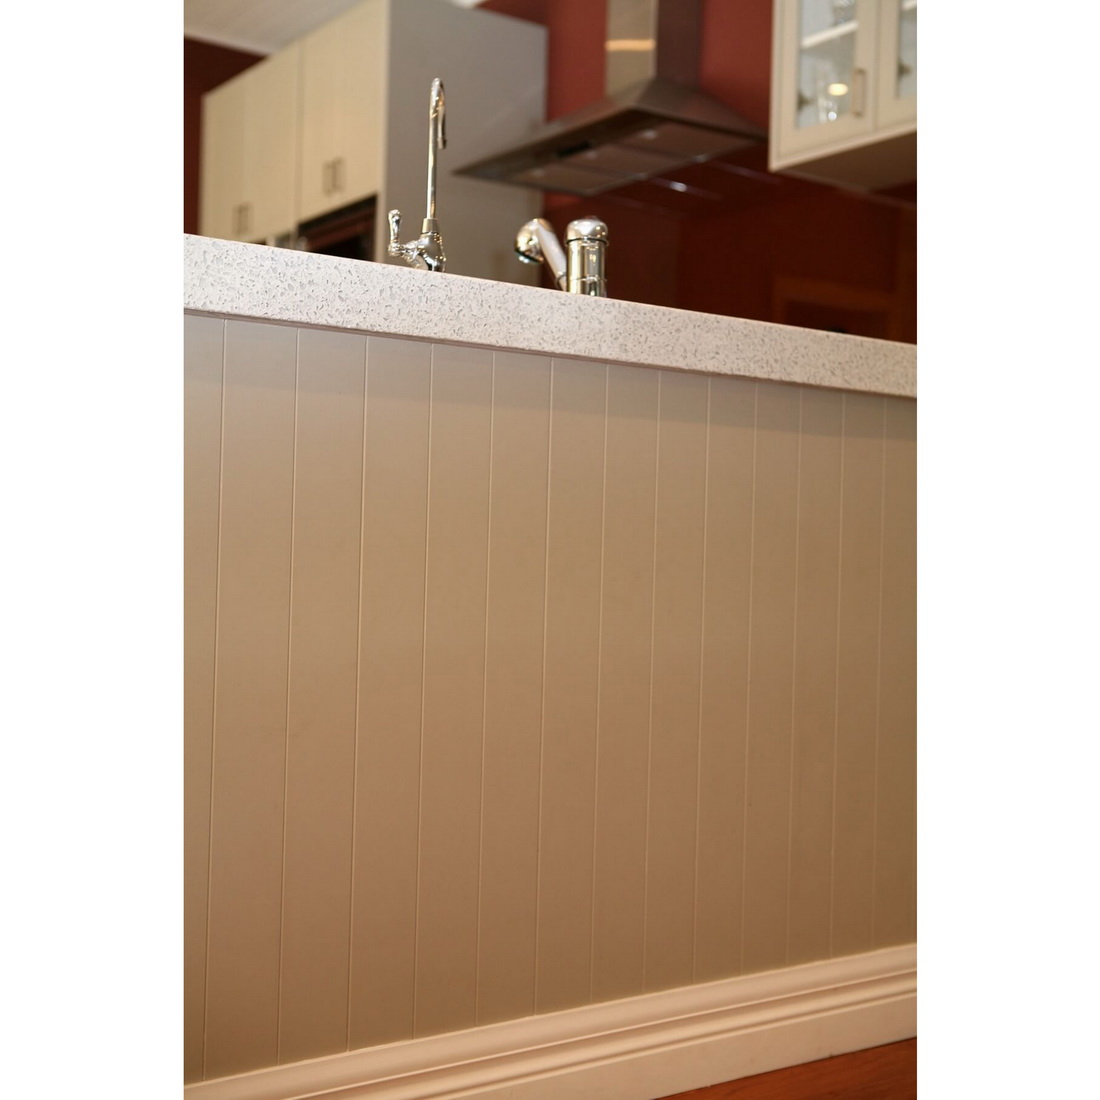 IBS Paneline V-Groove MDF Panel 2440 x 1220 x 9 mm Surface Paint